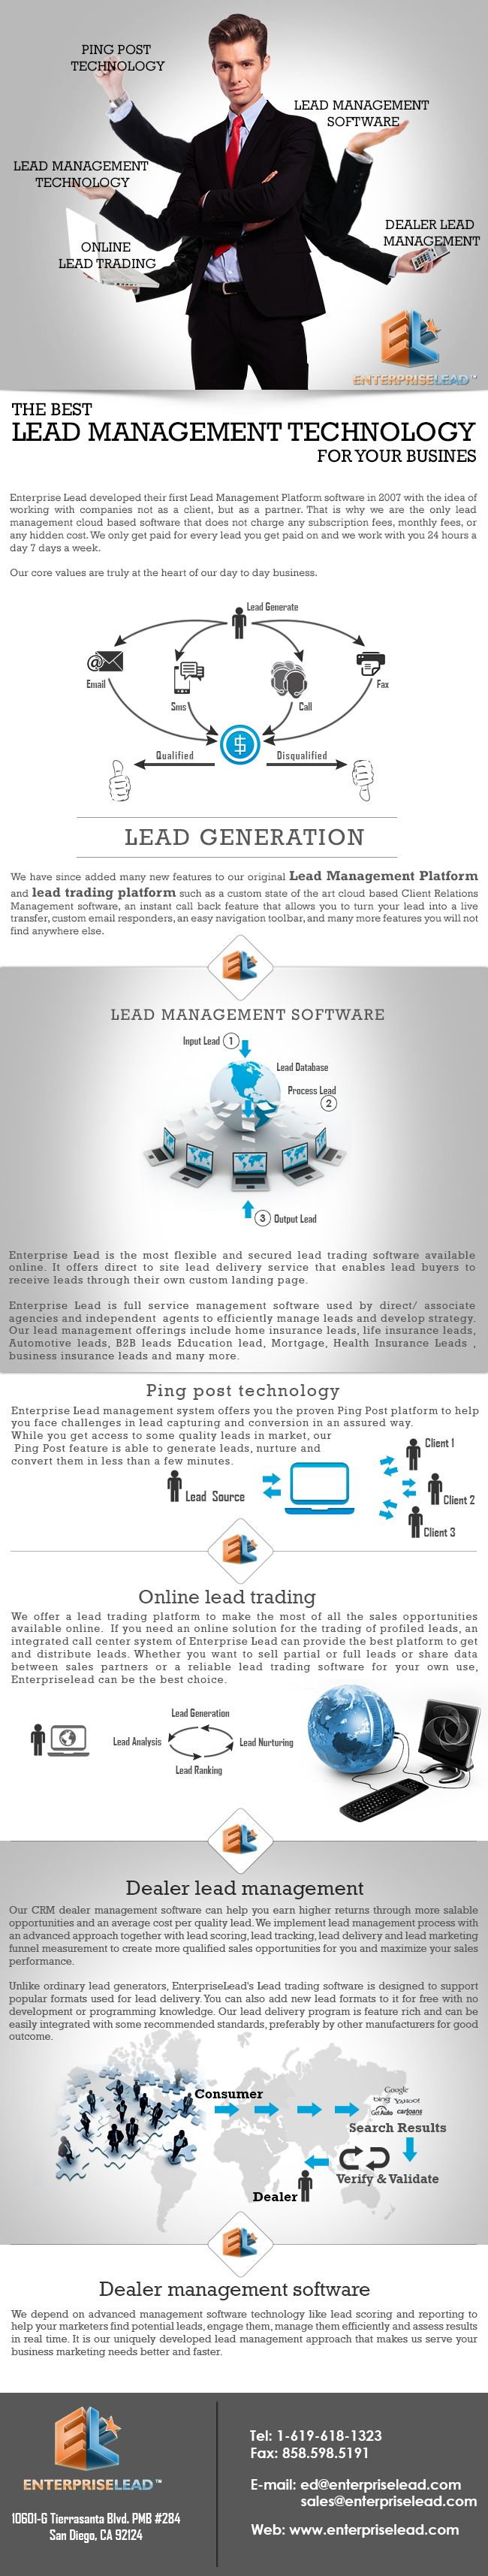 Enterprise lead is providing great services in the form of lead management system. This system is based on highly advanced technology. Its working method and results both are far better than old and typical marketing mediums. Unlike old marketing mediums, there is no need to wait till very long for getting good sales if you are a user of lead management system.